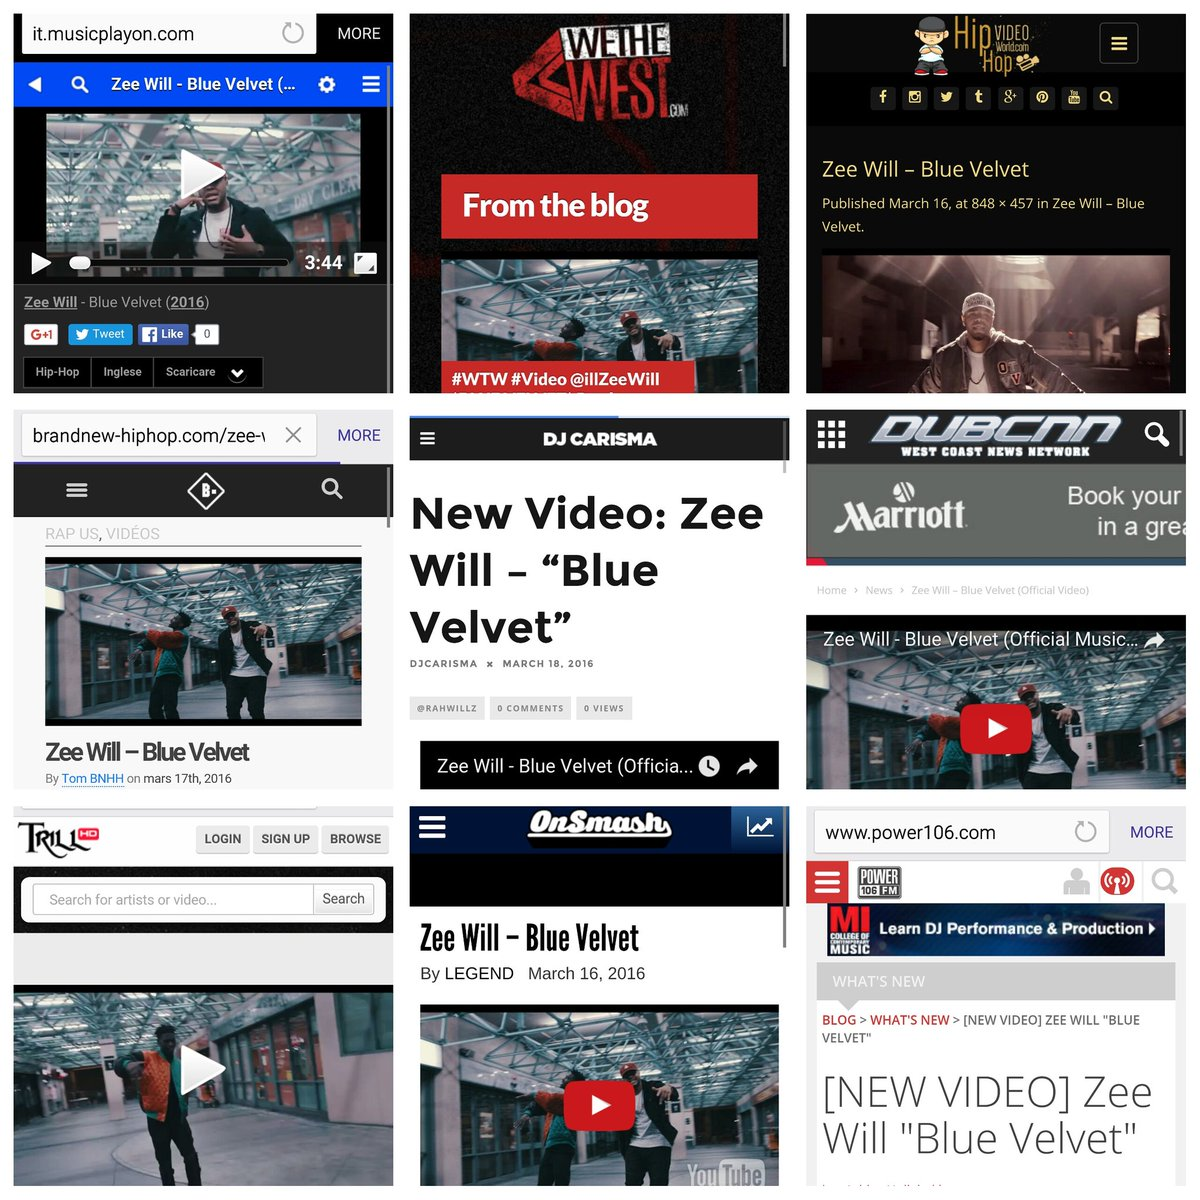 S/O to Everyone Supporting the @illZeeWill - Blue Velvet Video so far. #Salute  @GhostedThunder @zenzanbeats https://t.co/mJdrbgX6kc